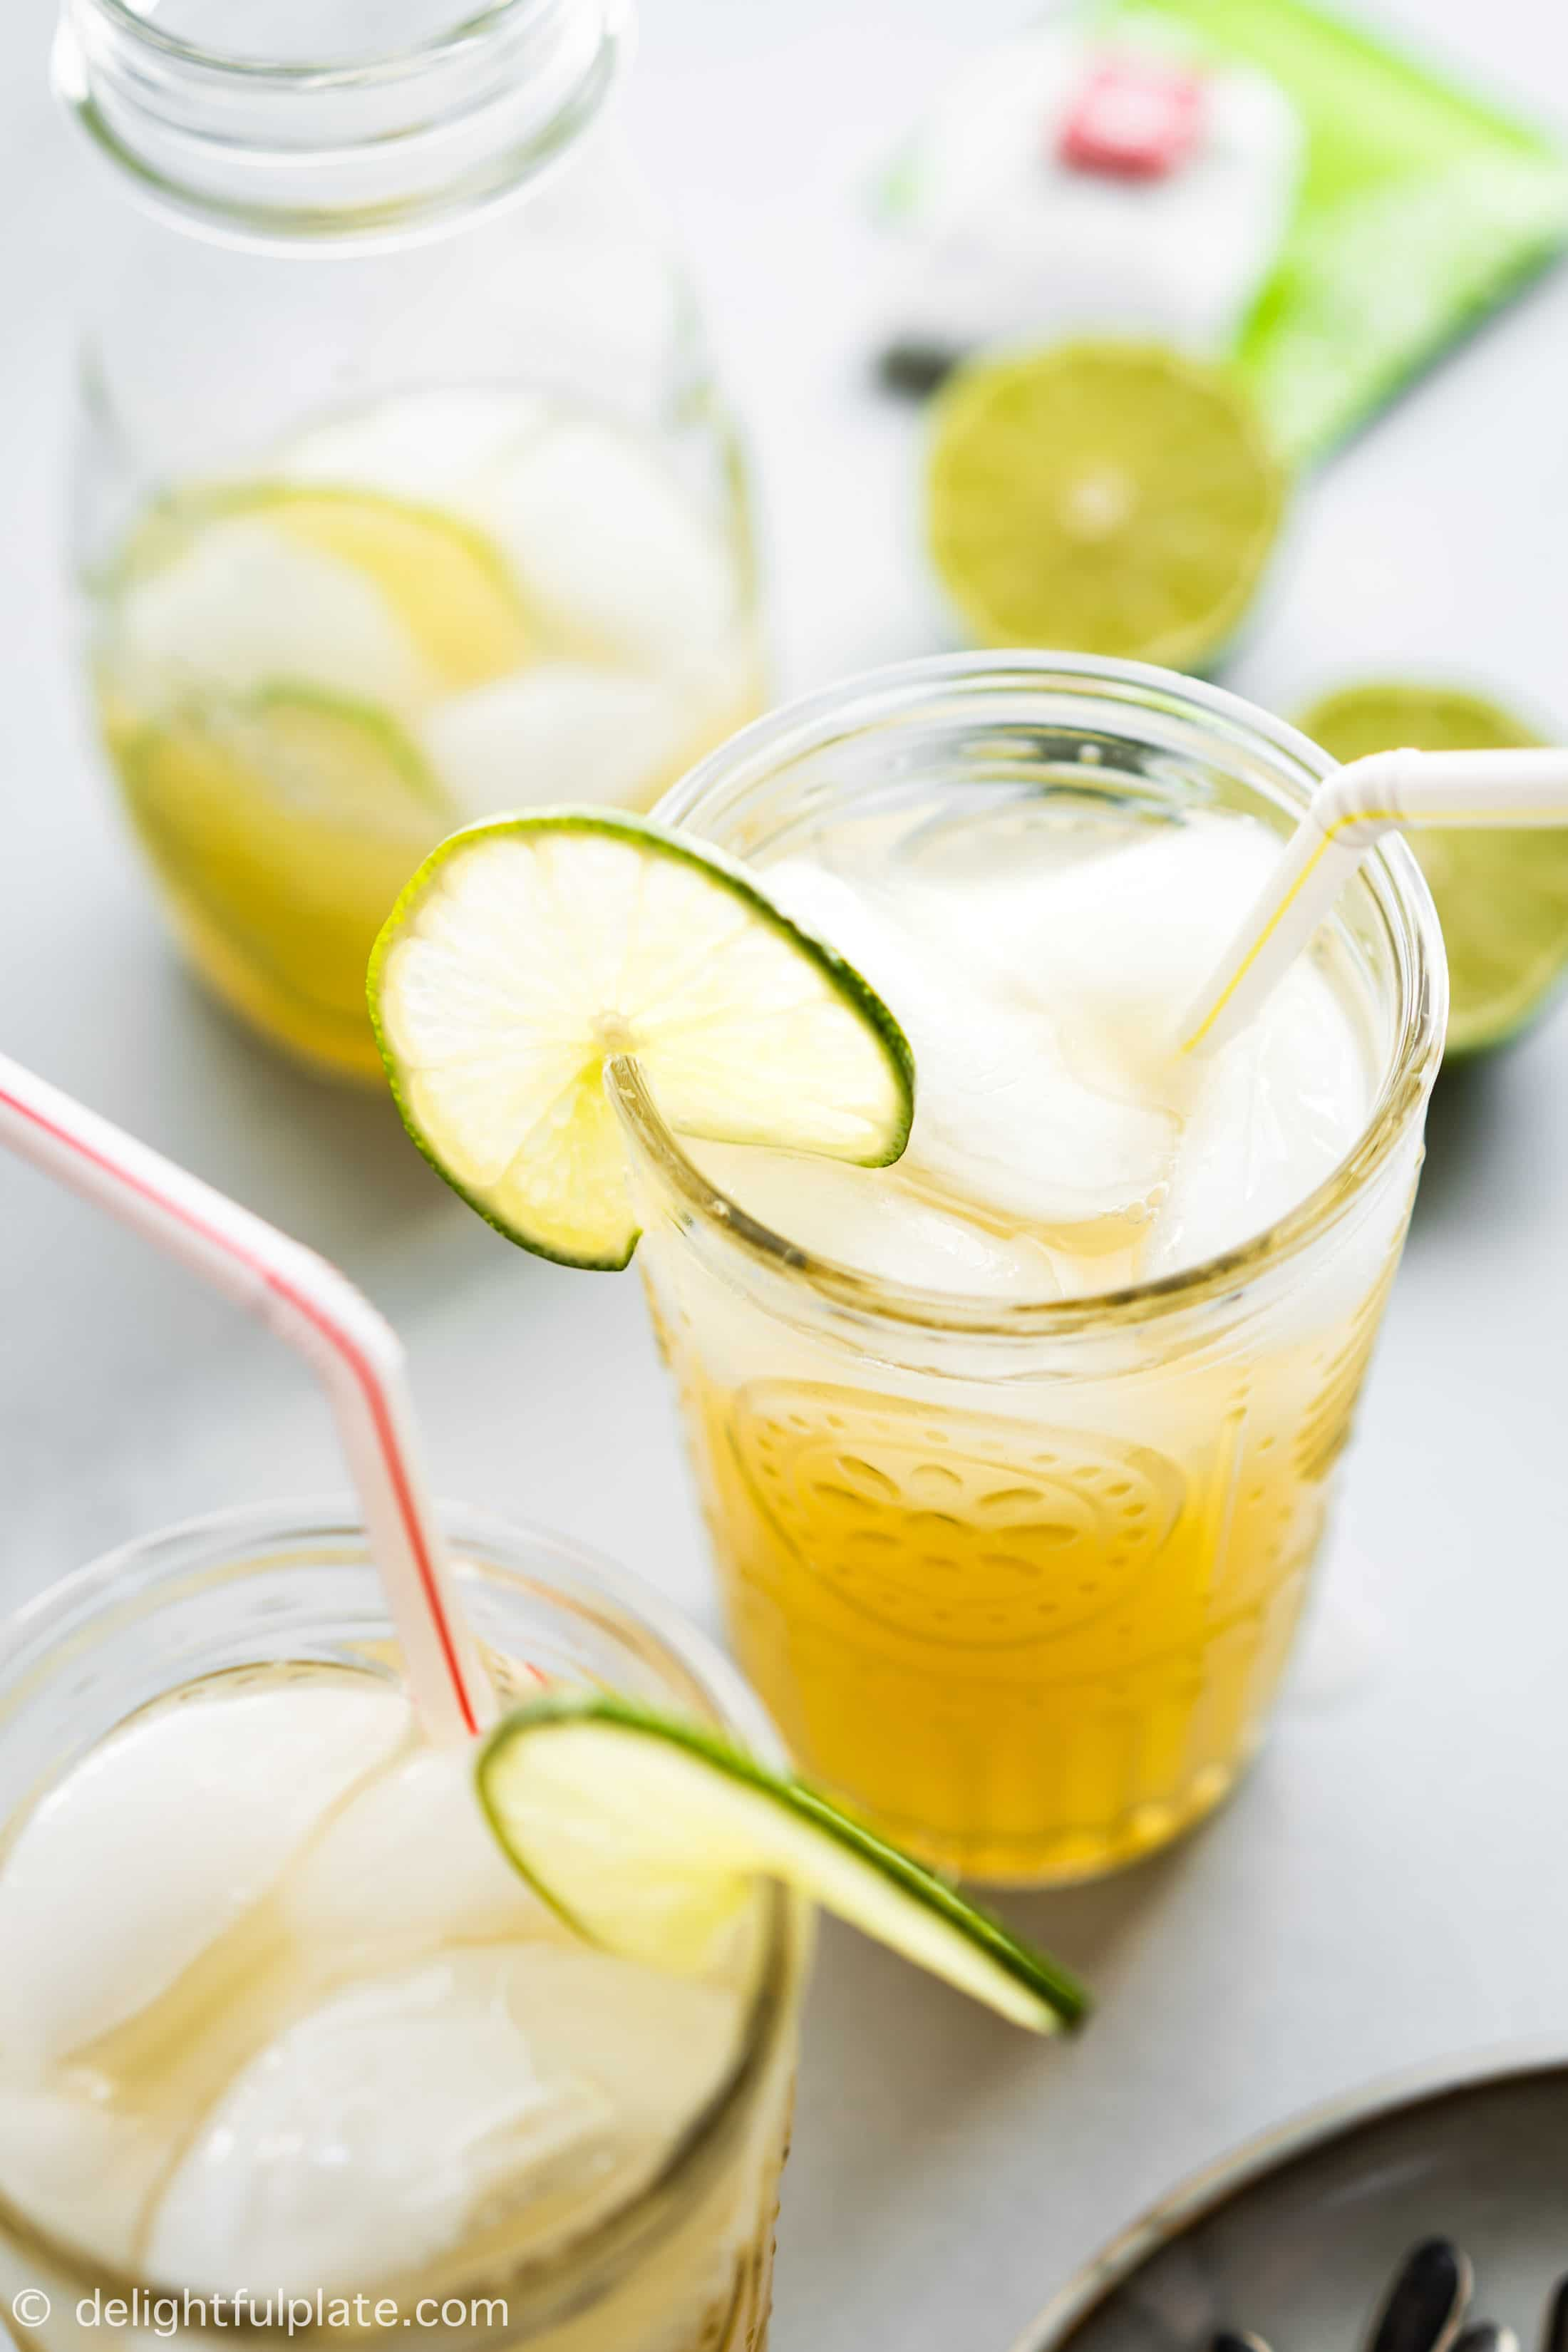 Vietnamese Lime Iced Tea (Tra Chanh Hanoi) is a refreshing and thirst-quenching drink for summer. It is very quick and easy to make with simple ingredients.